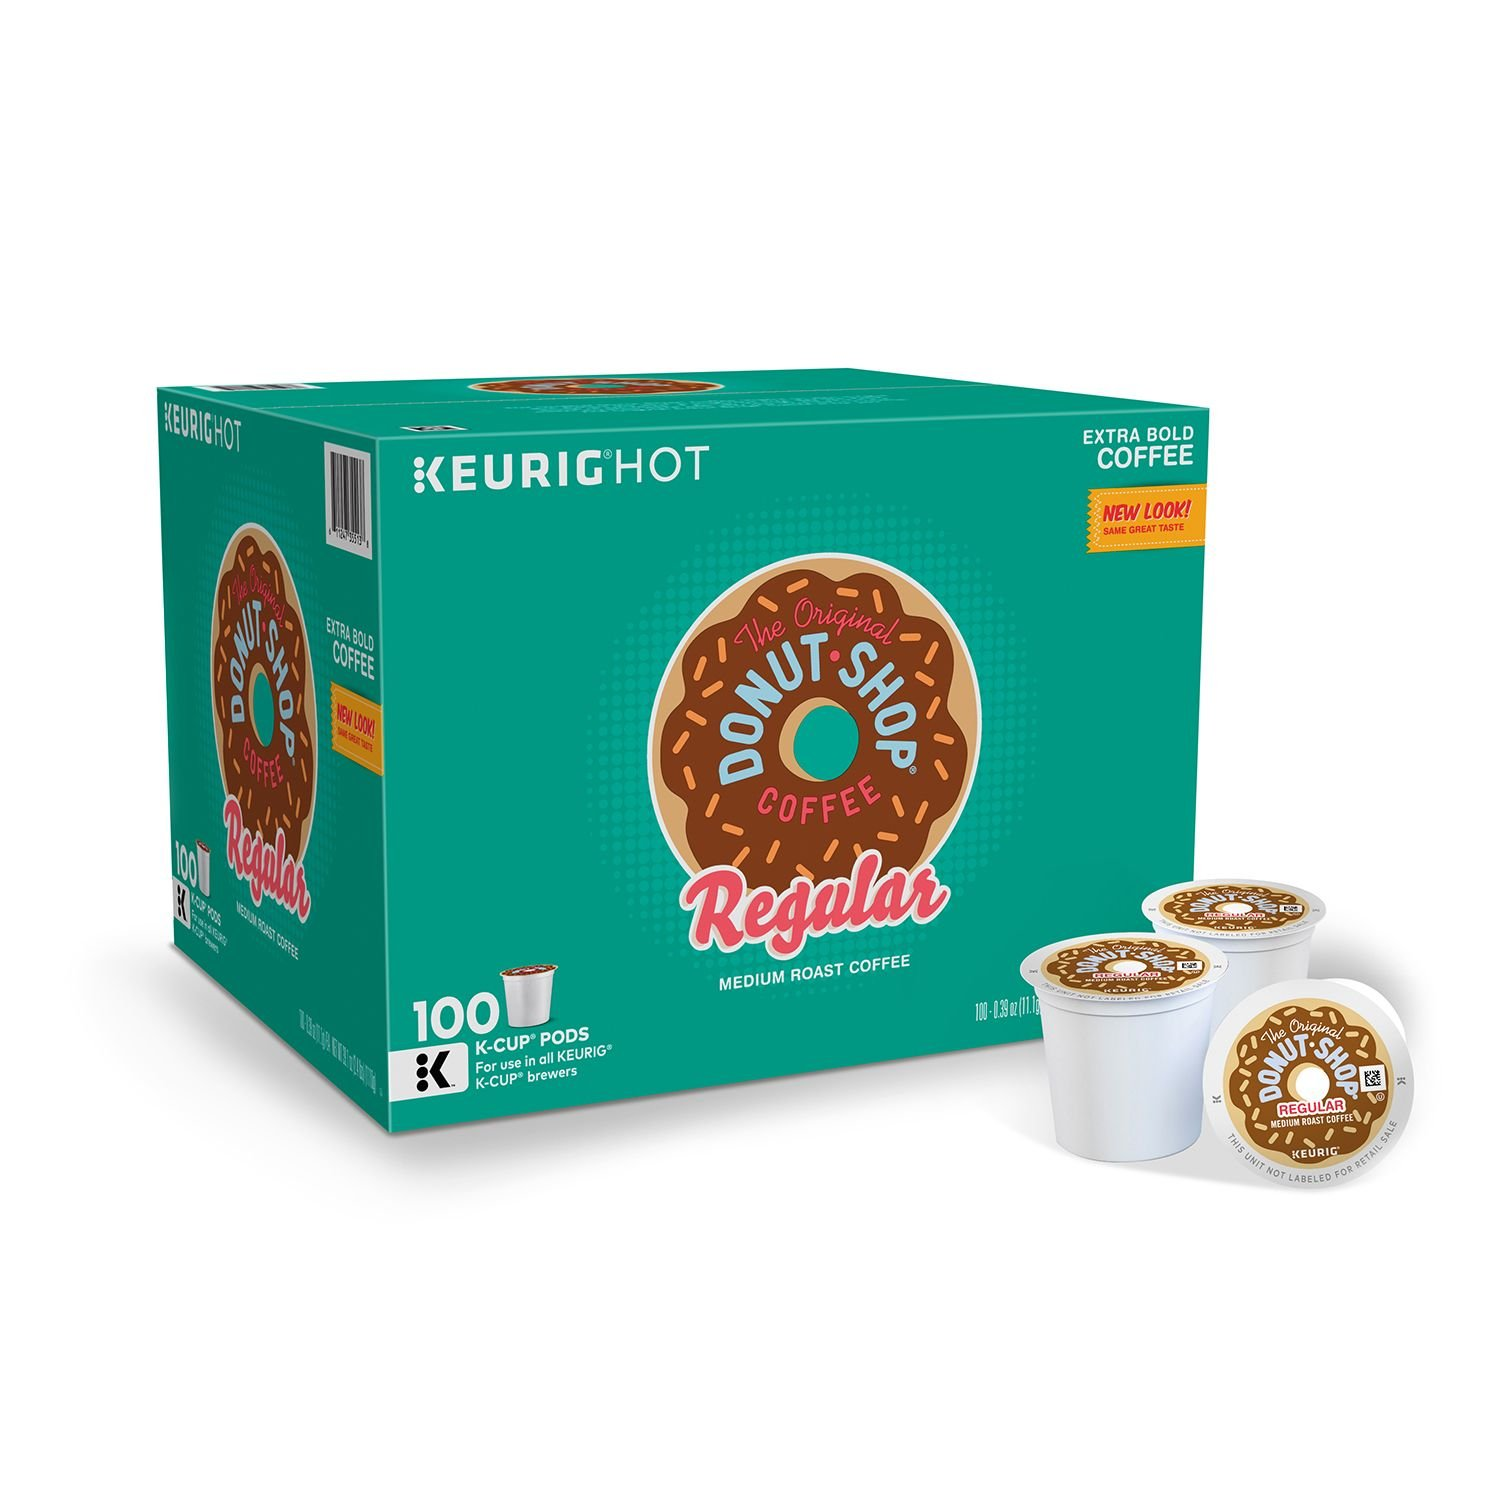 The Original Donut Shop Single-Serve K-Cup Pods, Medium Roast Coffee, 100 Count